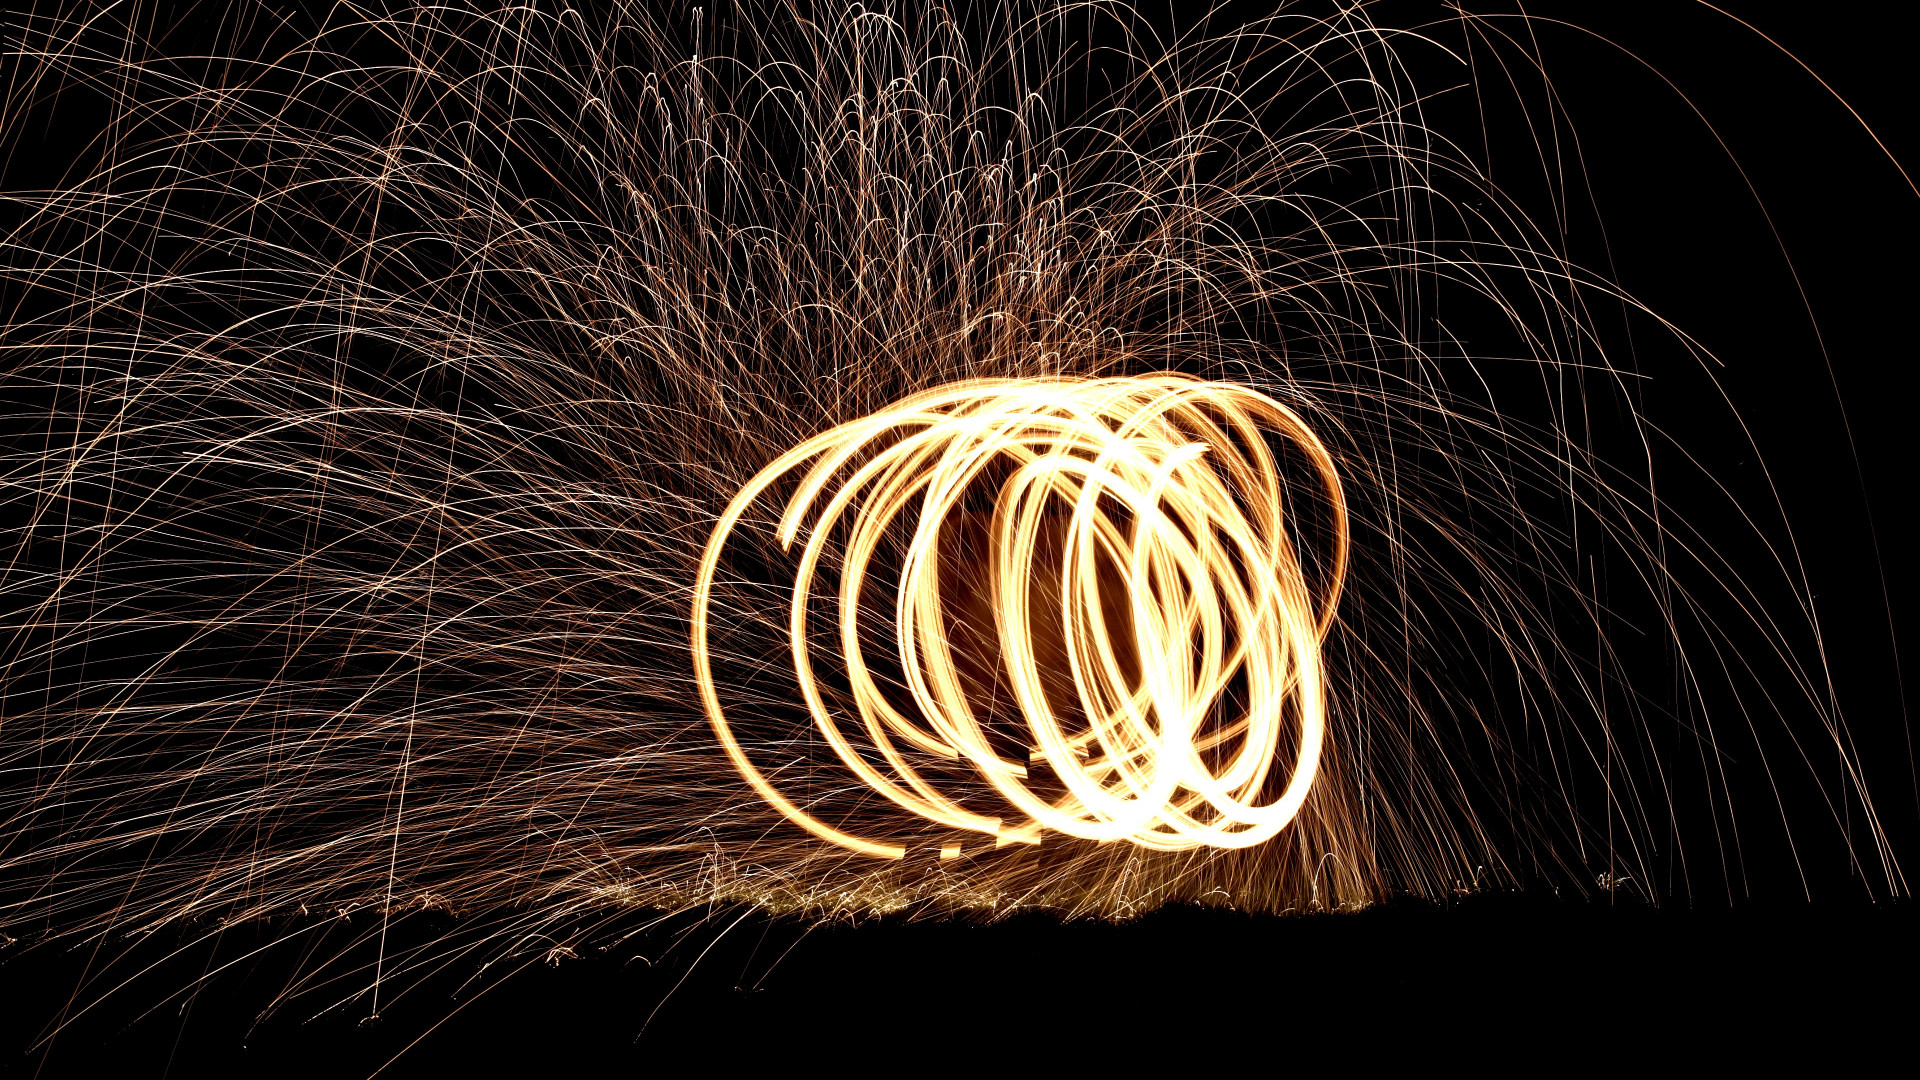 Spinning wire wool wallpaper 1920x1080